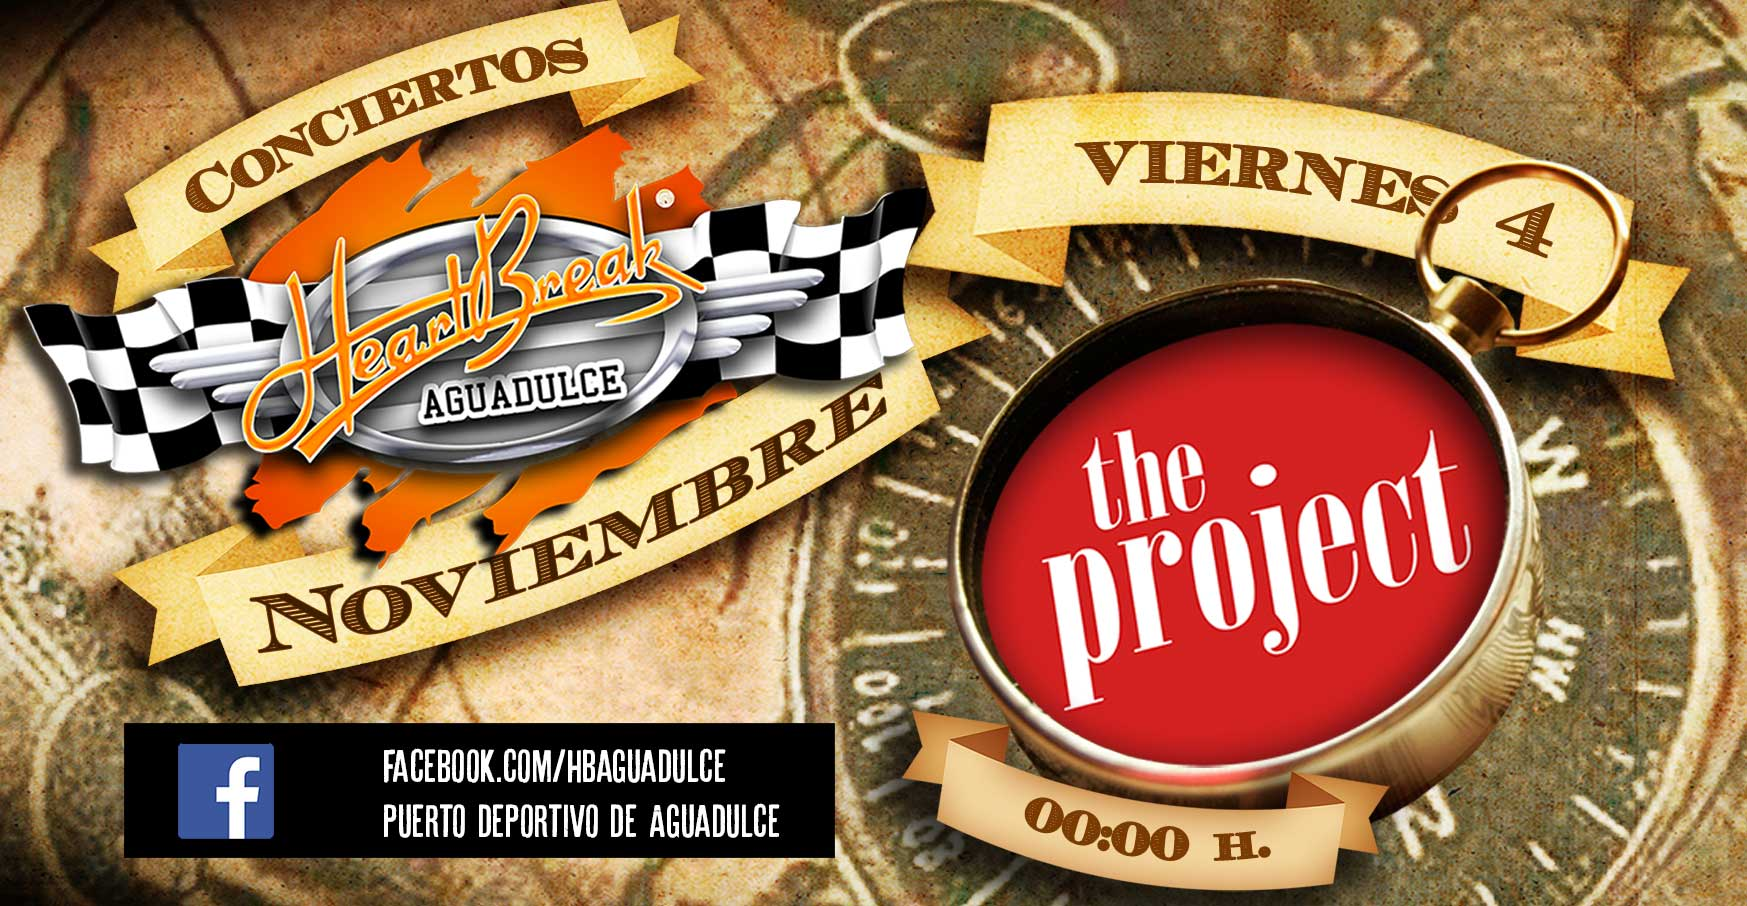 Concierto de The Project